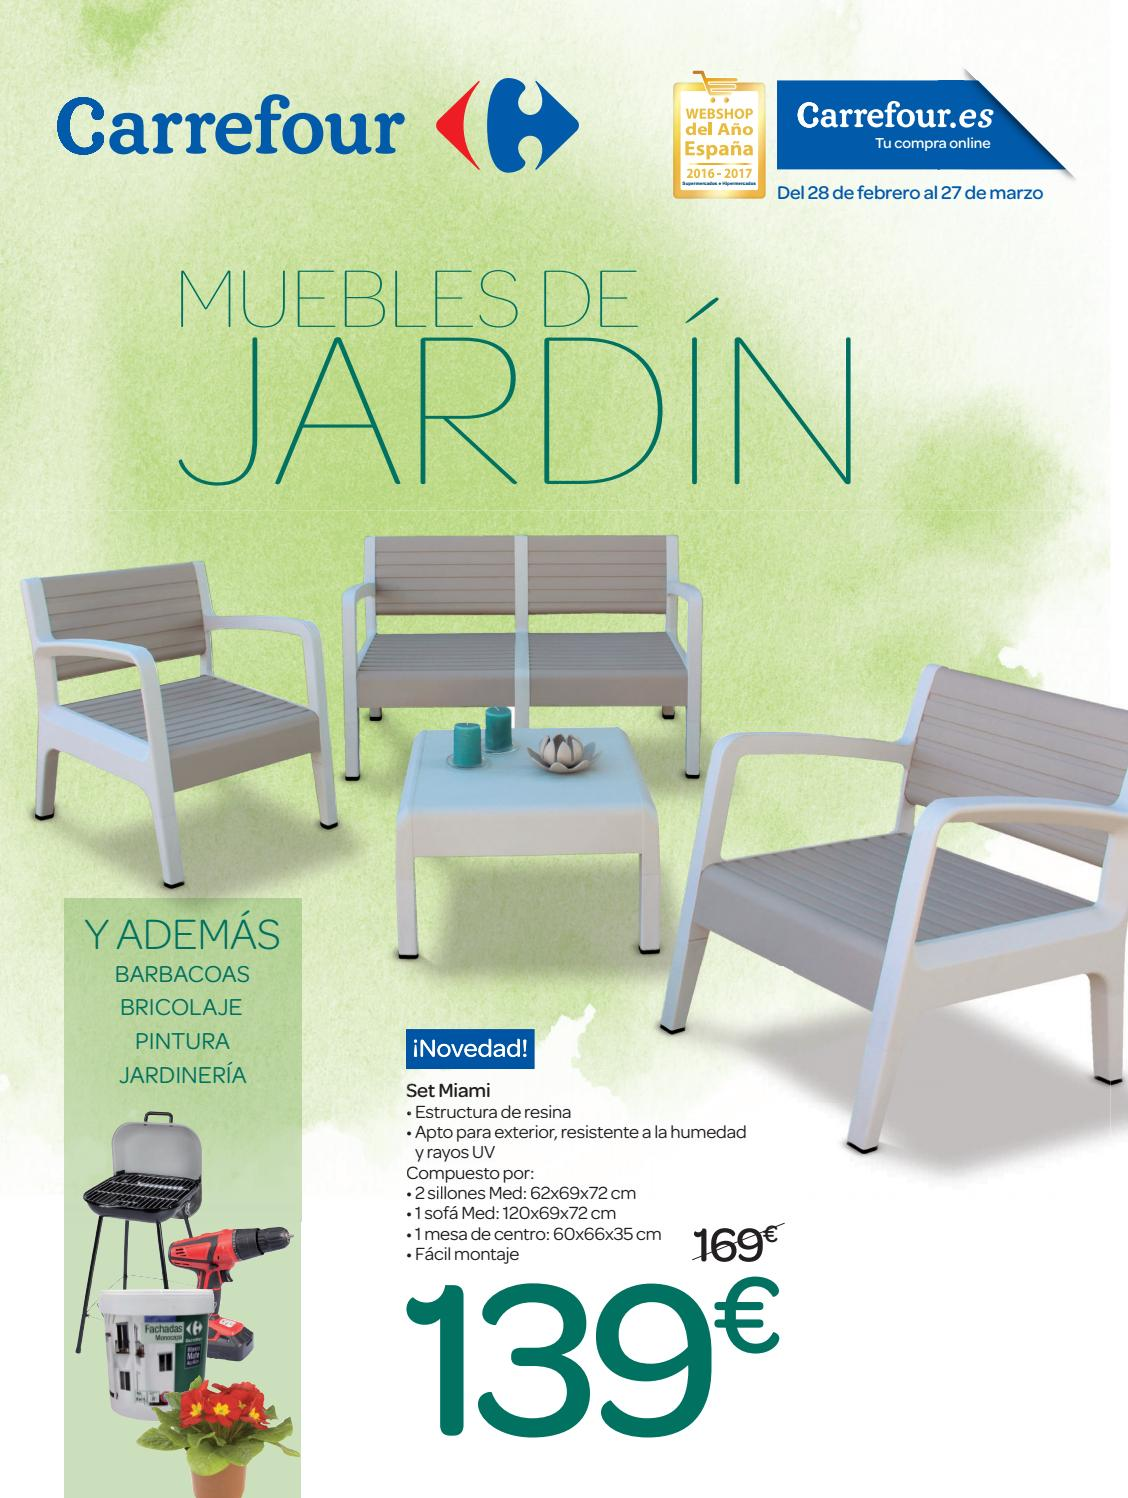 Muebles de jardin carrefour by ofertas supermercados issuu for Muebles resina carrefour